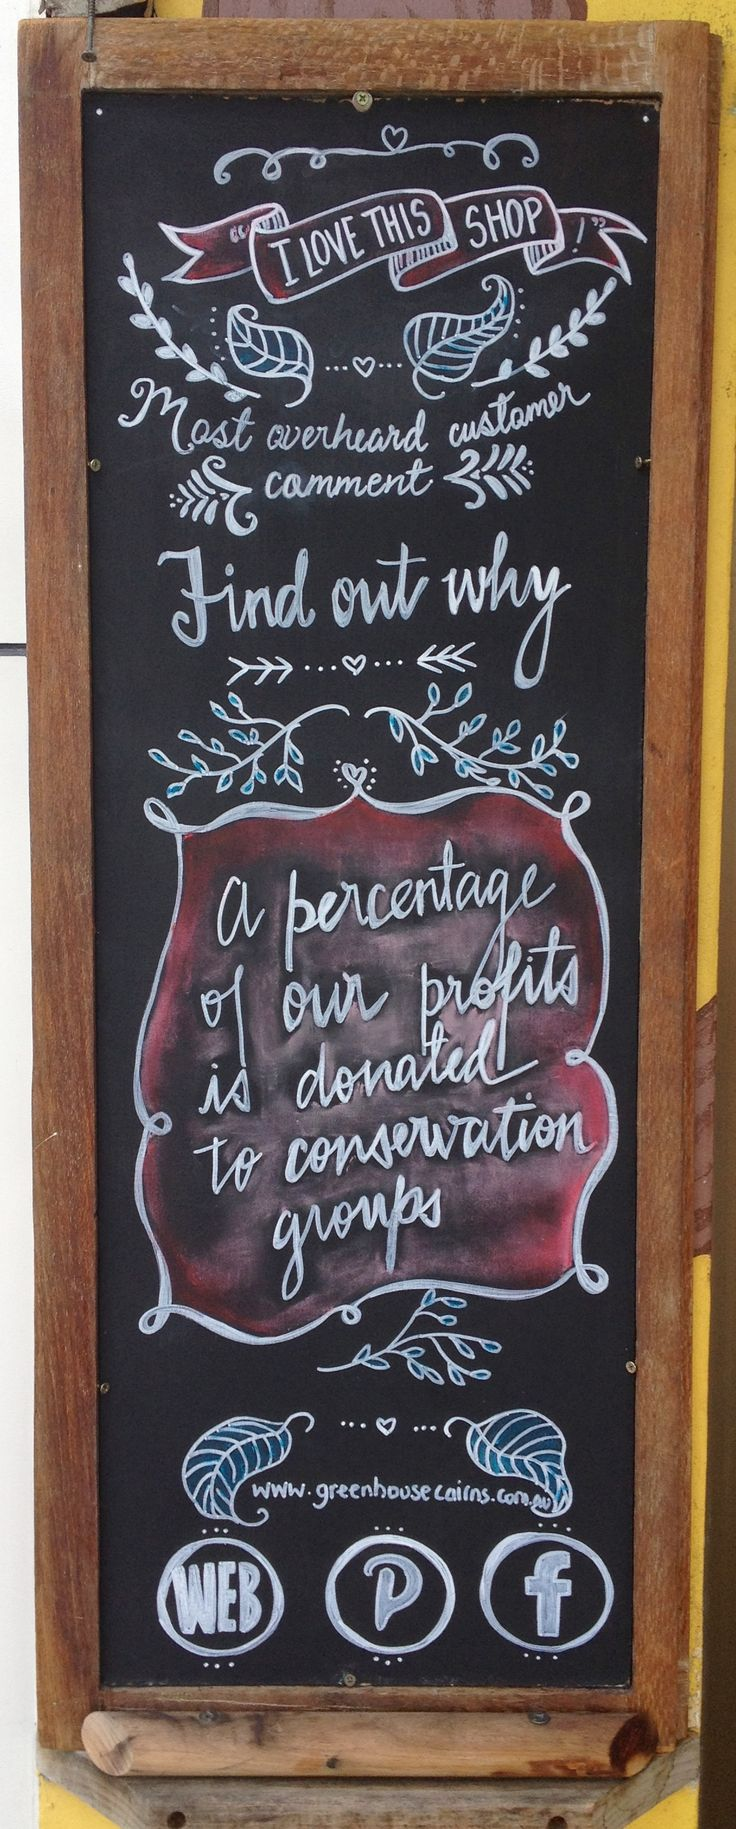 Our beautifully decorated black board - hangs faithfully out the front of the shop day after day. :)